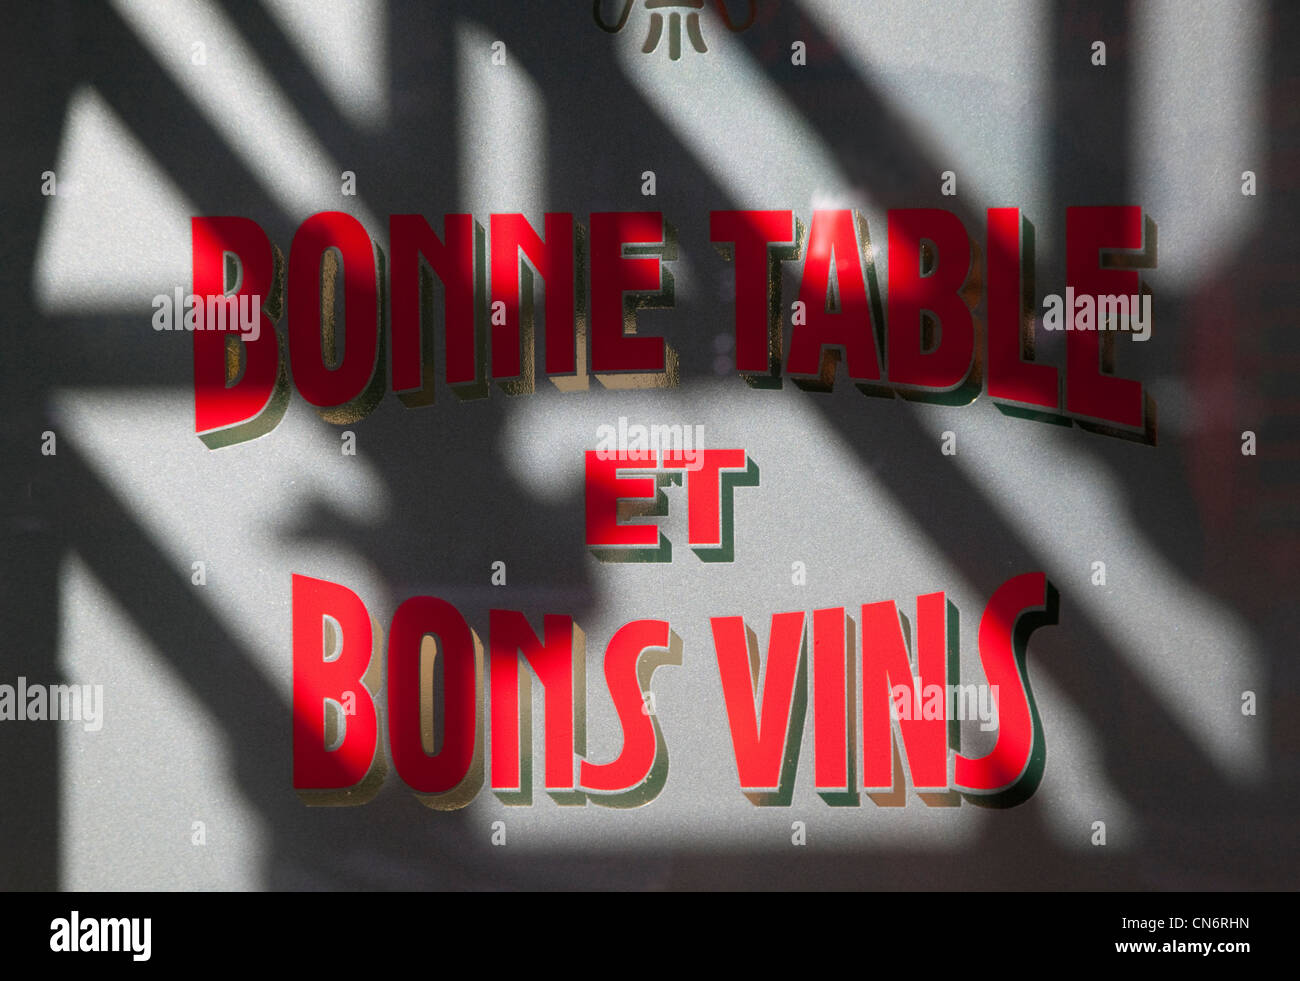 Bonne Table & Bons Vins (Good Food & Wine) sign in French restaurant window, London - Stock Image